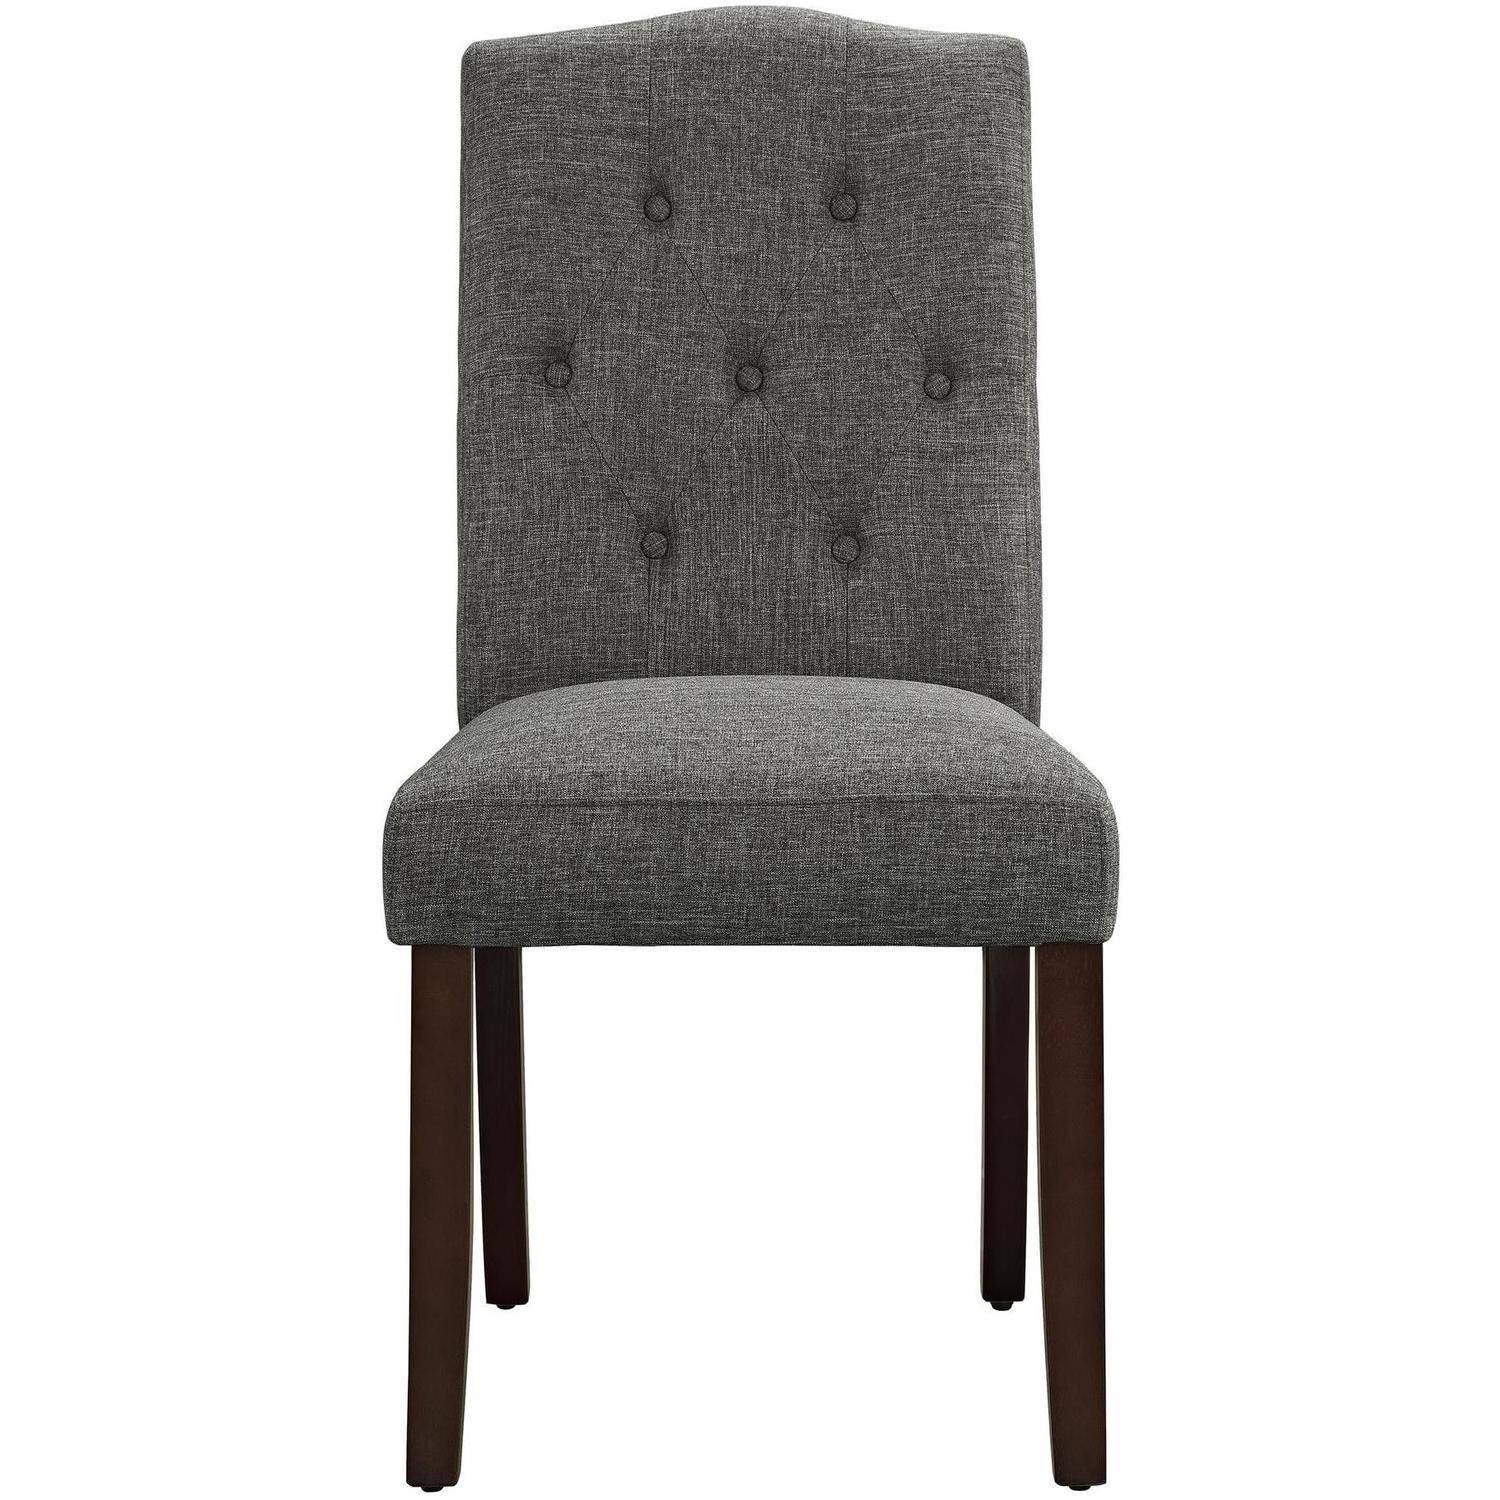 Upholstered Kitchen Chairs Dining Room Tufted Dining Chair Upholstered Side Chairs